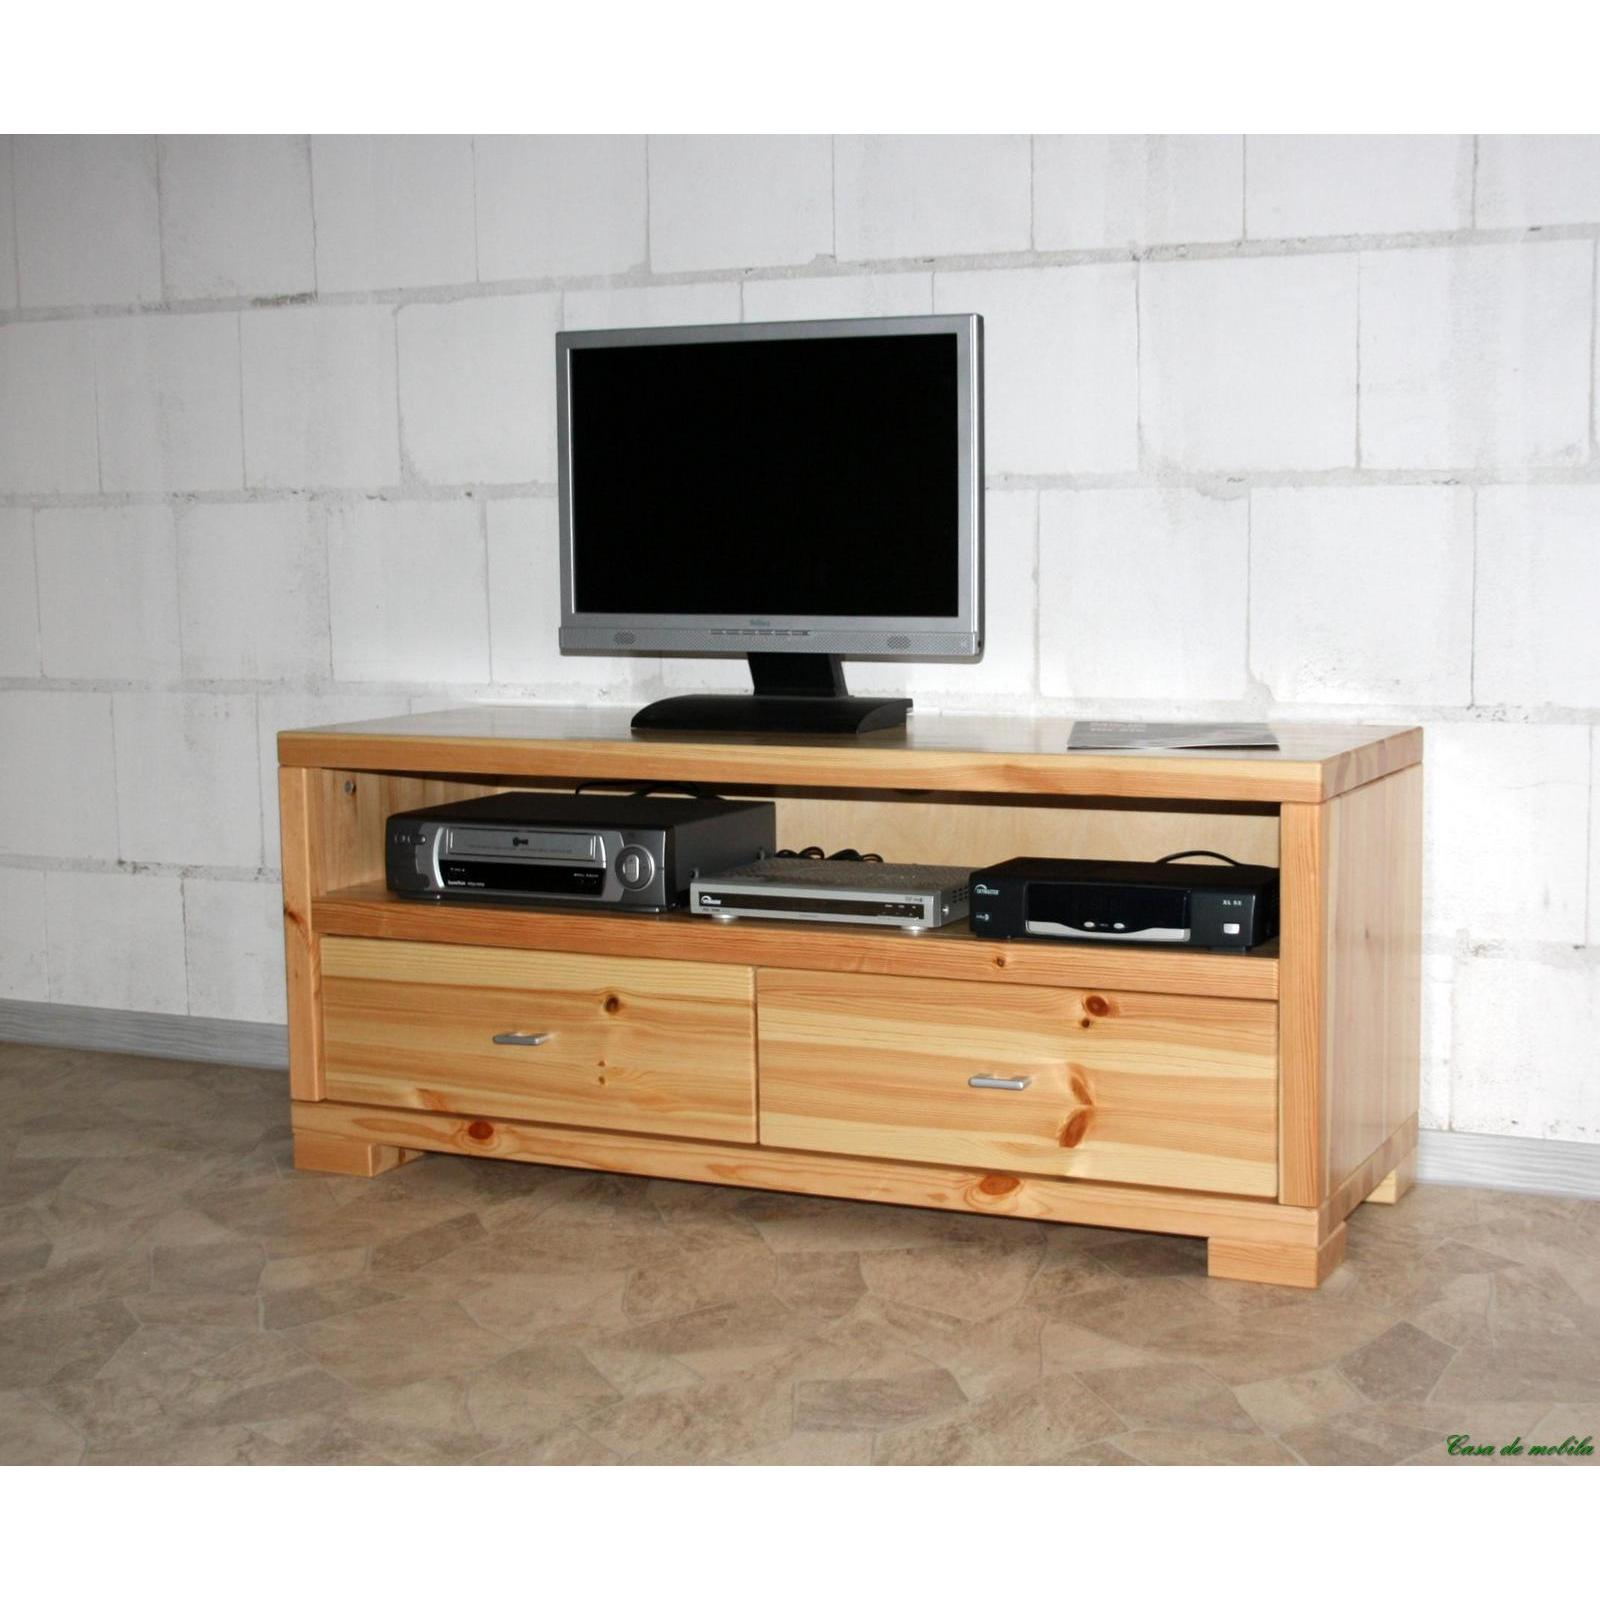 tv tisch lowboard 120 guldborg kiefer massiv natur lackiert. Black Bedroom Furniture Sets. Home Design Ideas